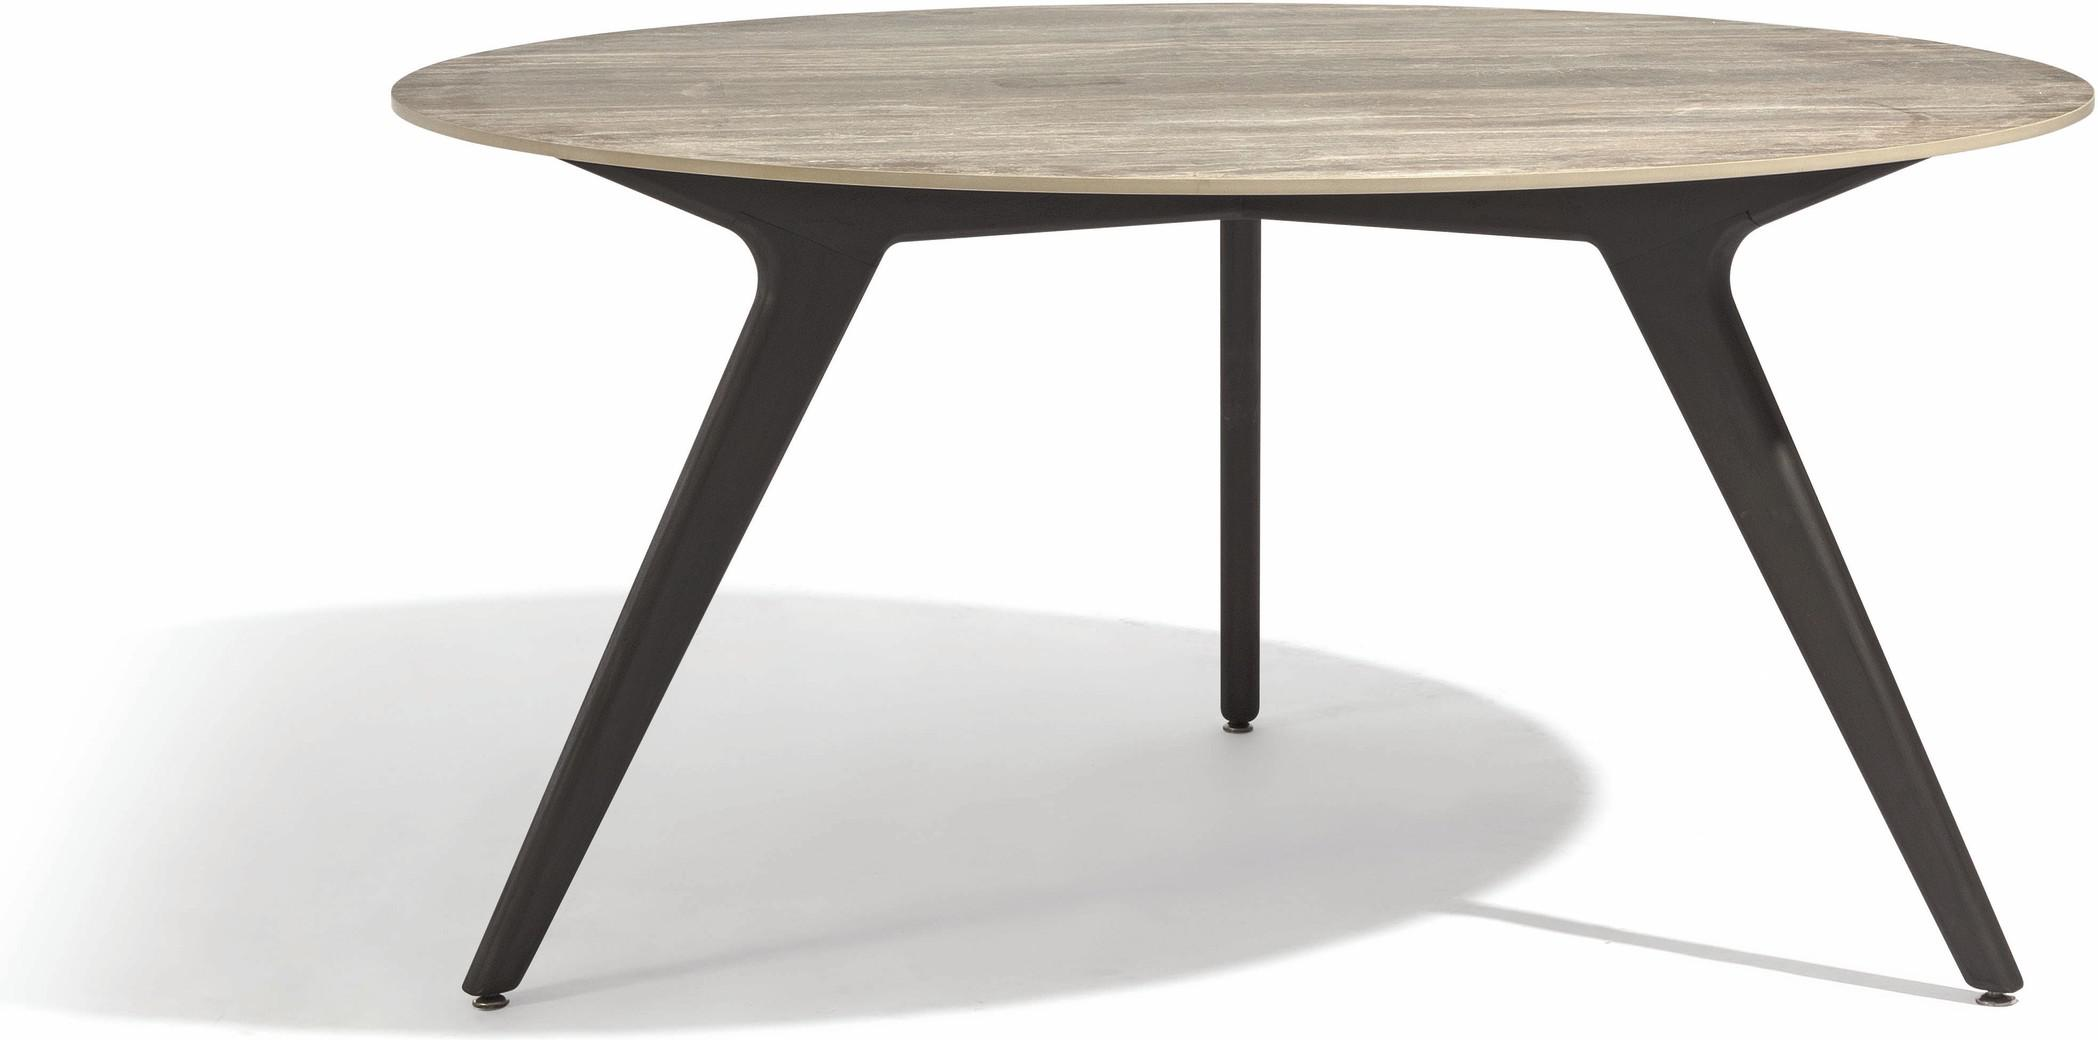 Torsa Dining table - Teak nero - CF 148